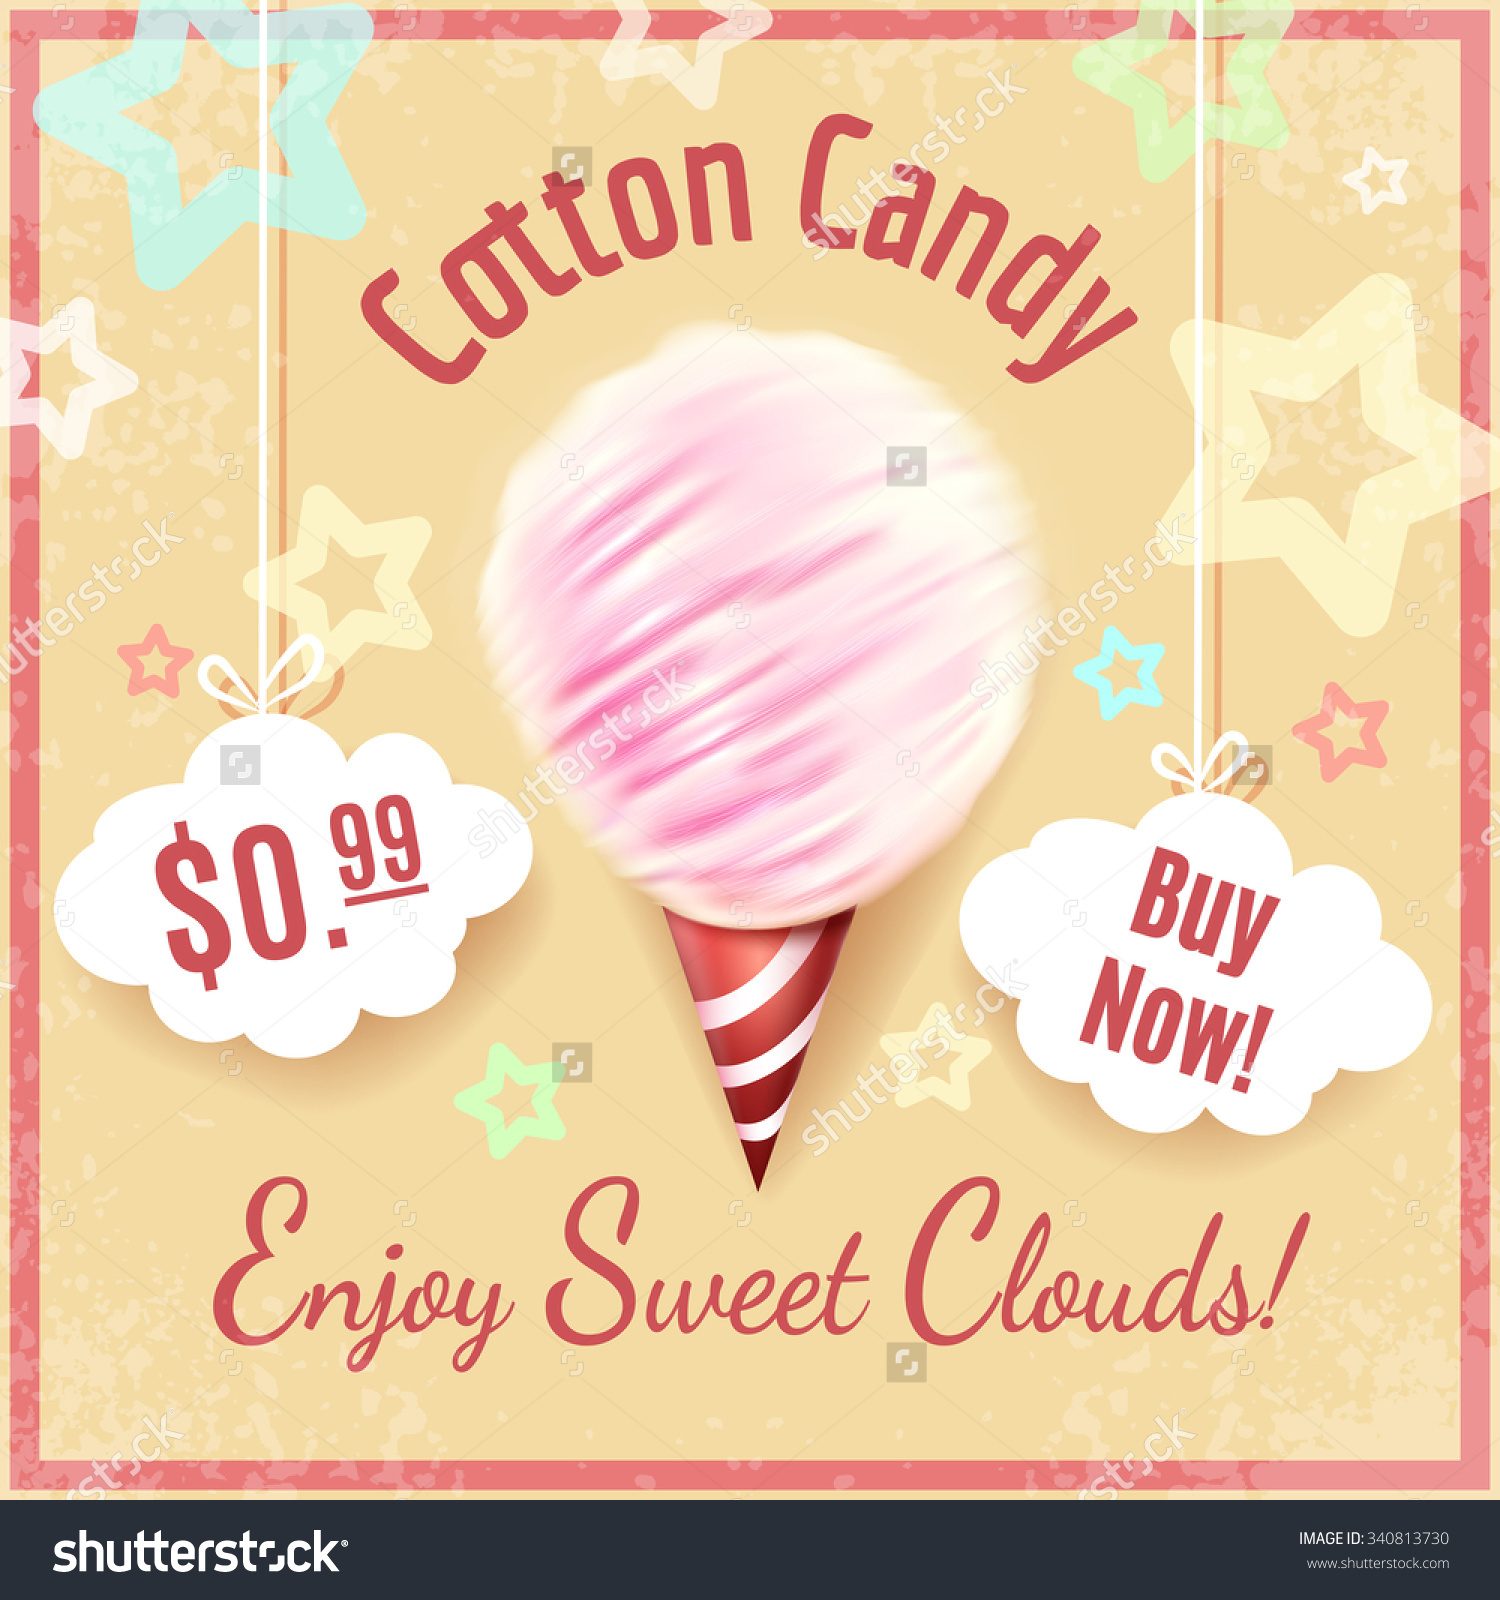 Cotton Candy Vector Poster Background Lettering Stock.